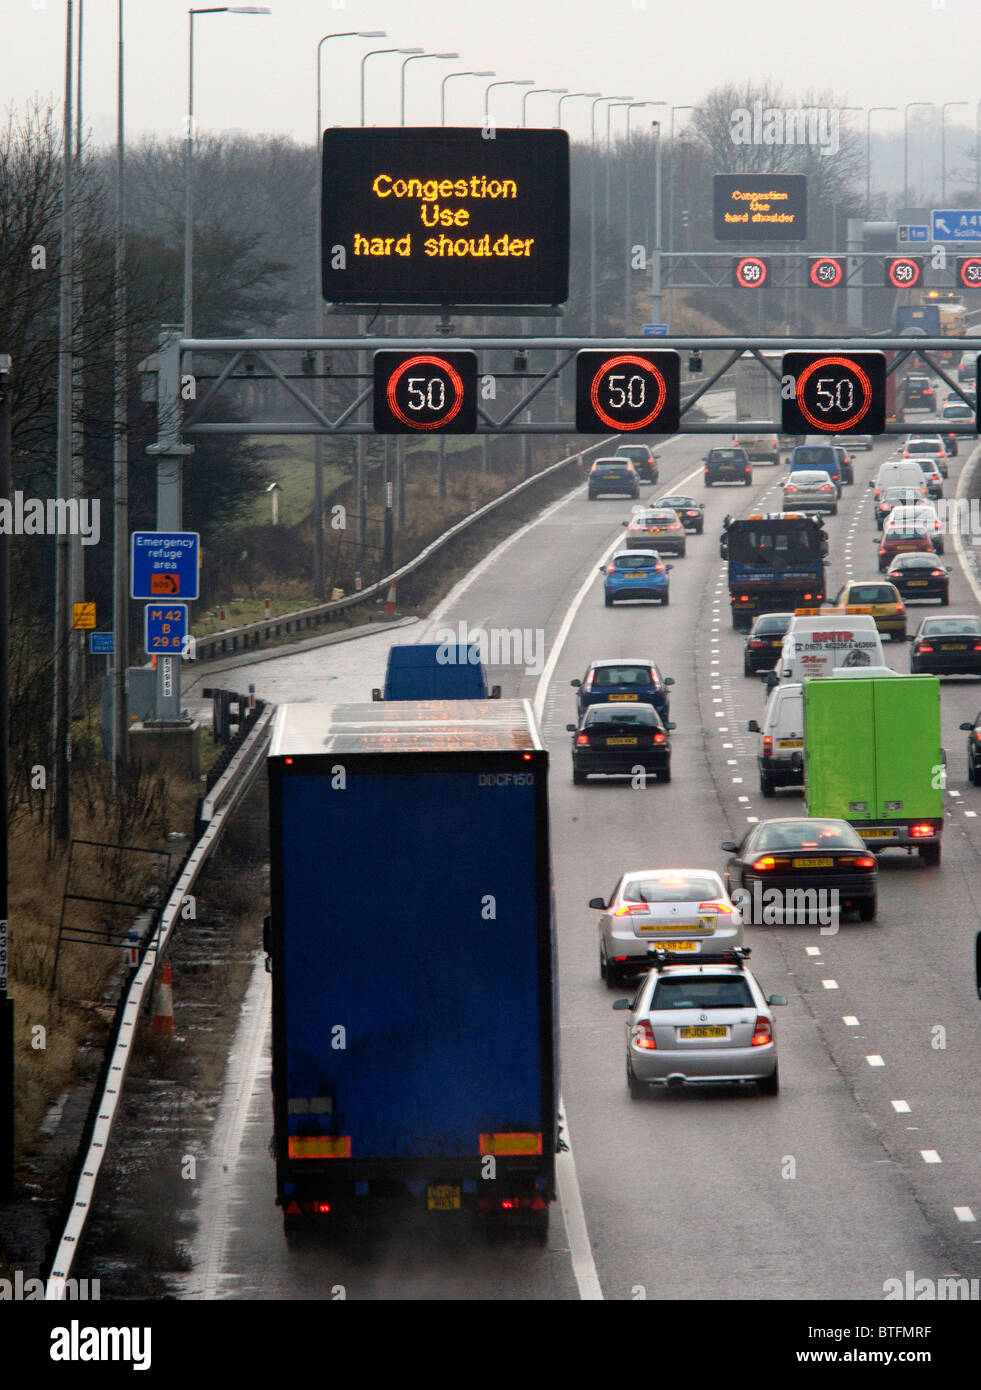 Signage on the M42 motorway in the West Midlands advising motorists to use the hard shoulder when there is congestion - Stock Image